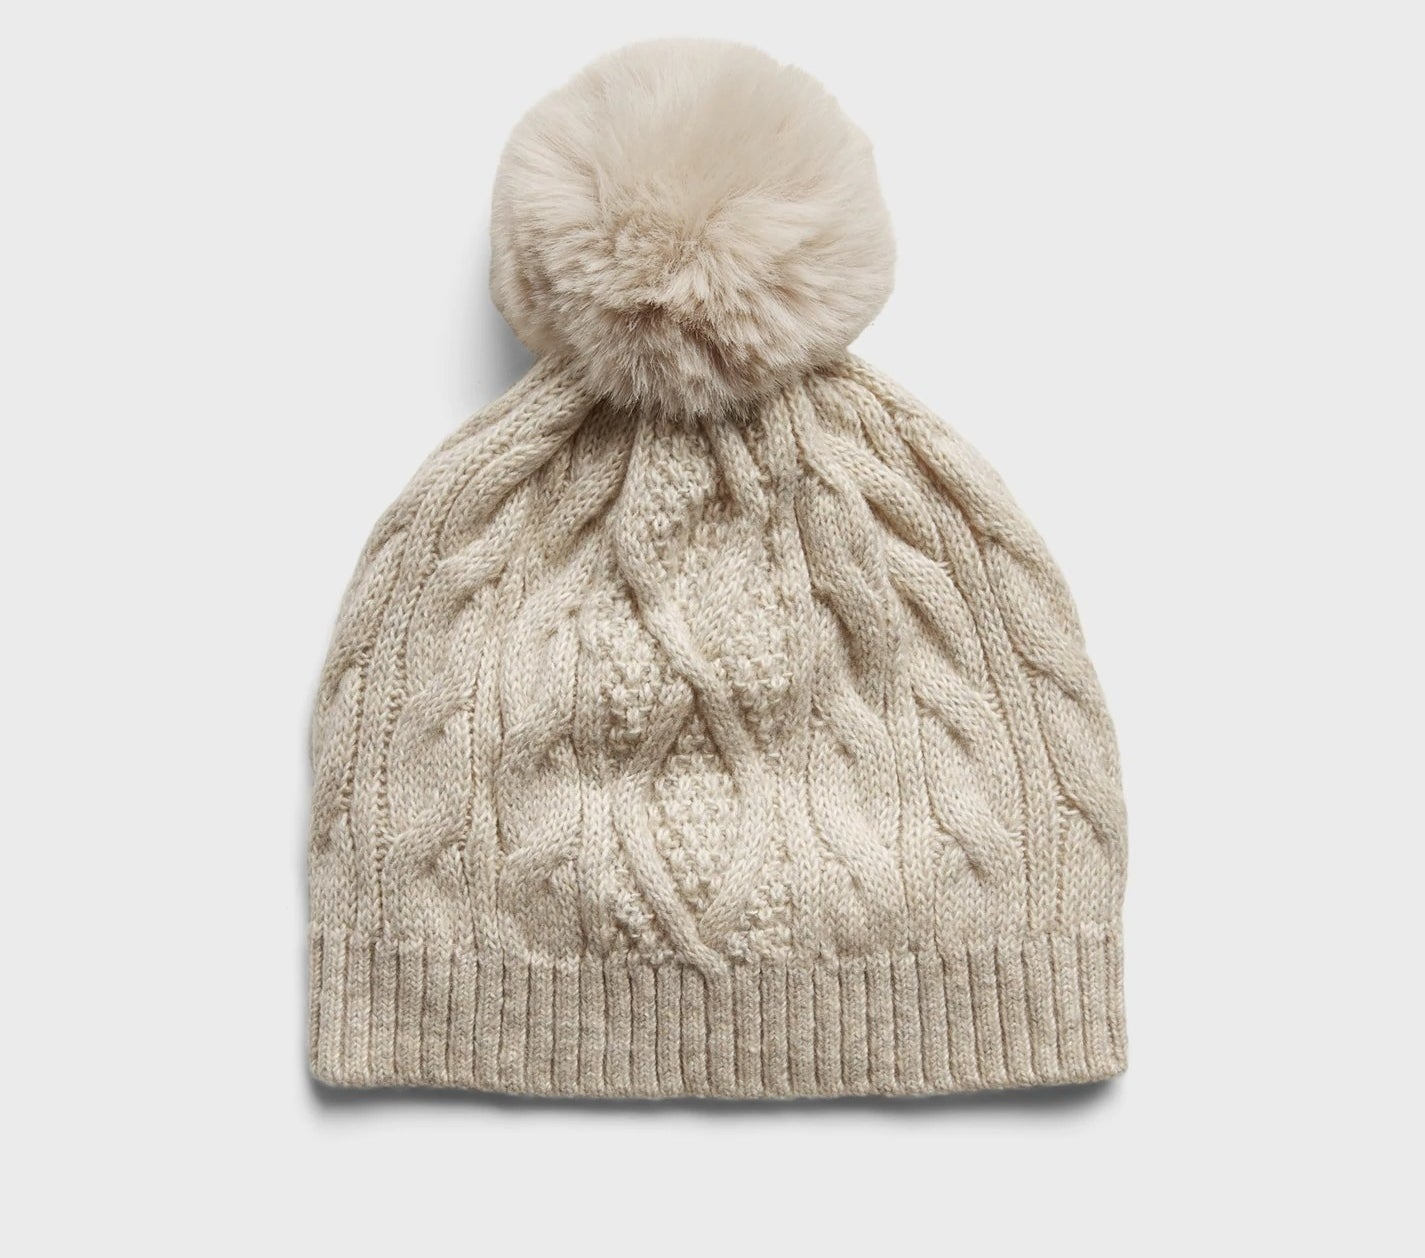 The beanie in the color Oatmeal Heather